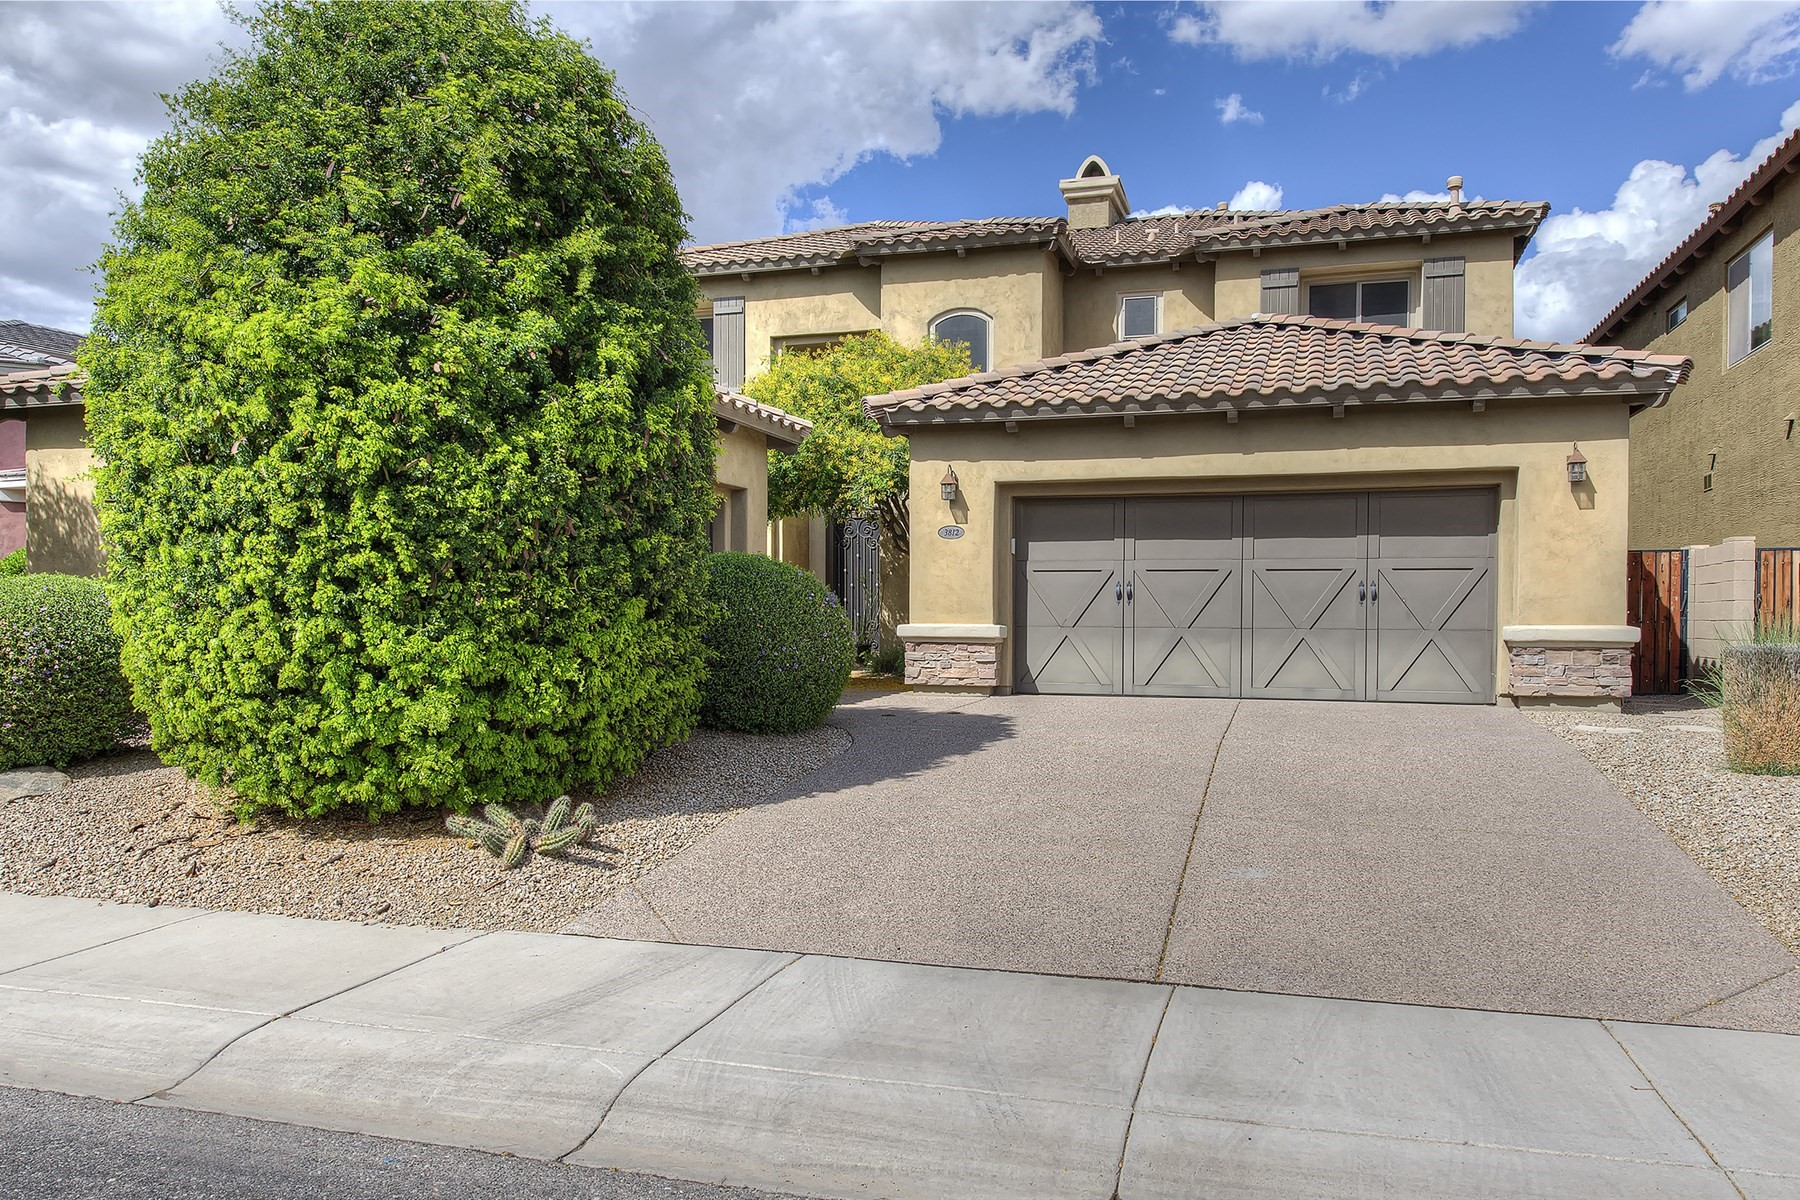 一戸建て のために 売買 アット Immaculately maintained large family home in desirable Desert Ridge 3812 E Daley Ln Phoenix, アリゾナ, 85050 アメリカ合衆国